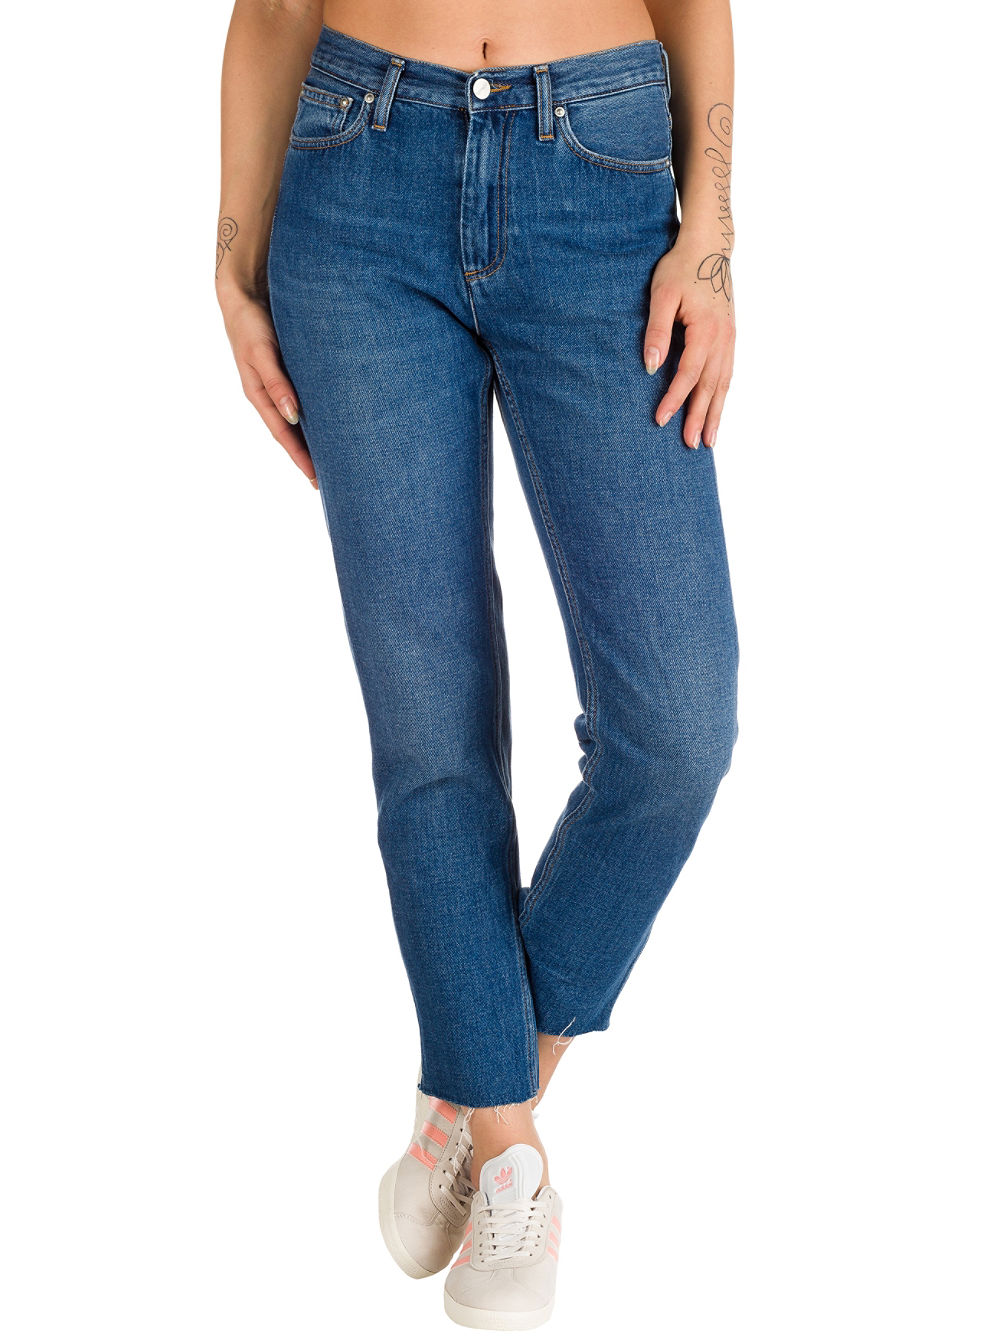 Page Carrot Ankle R.E. Jeans